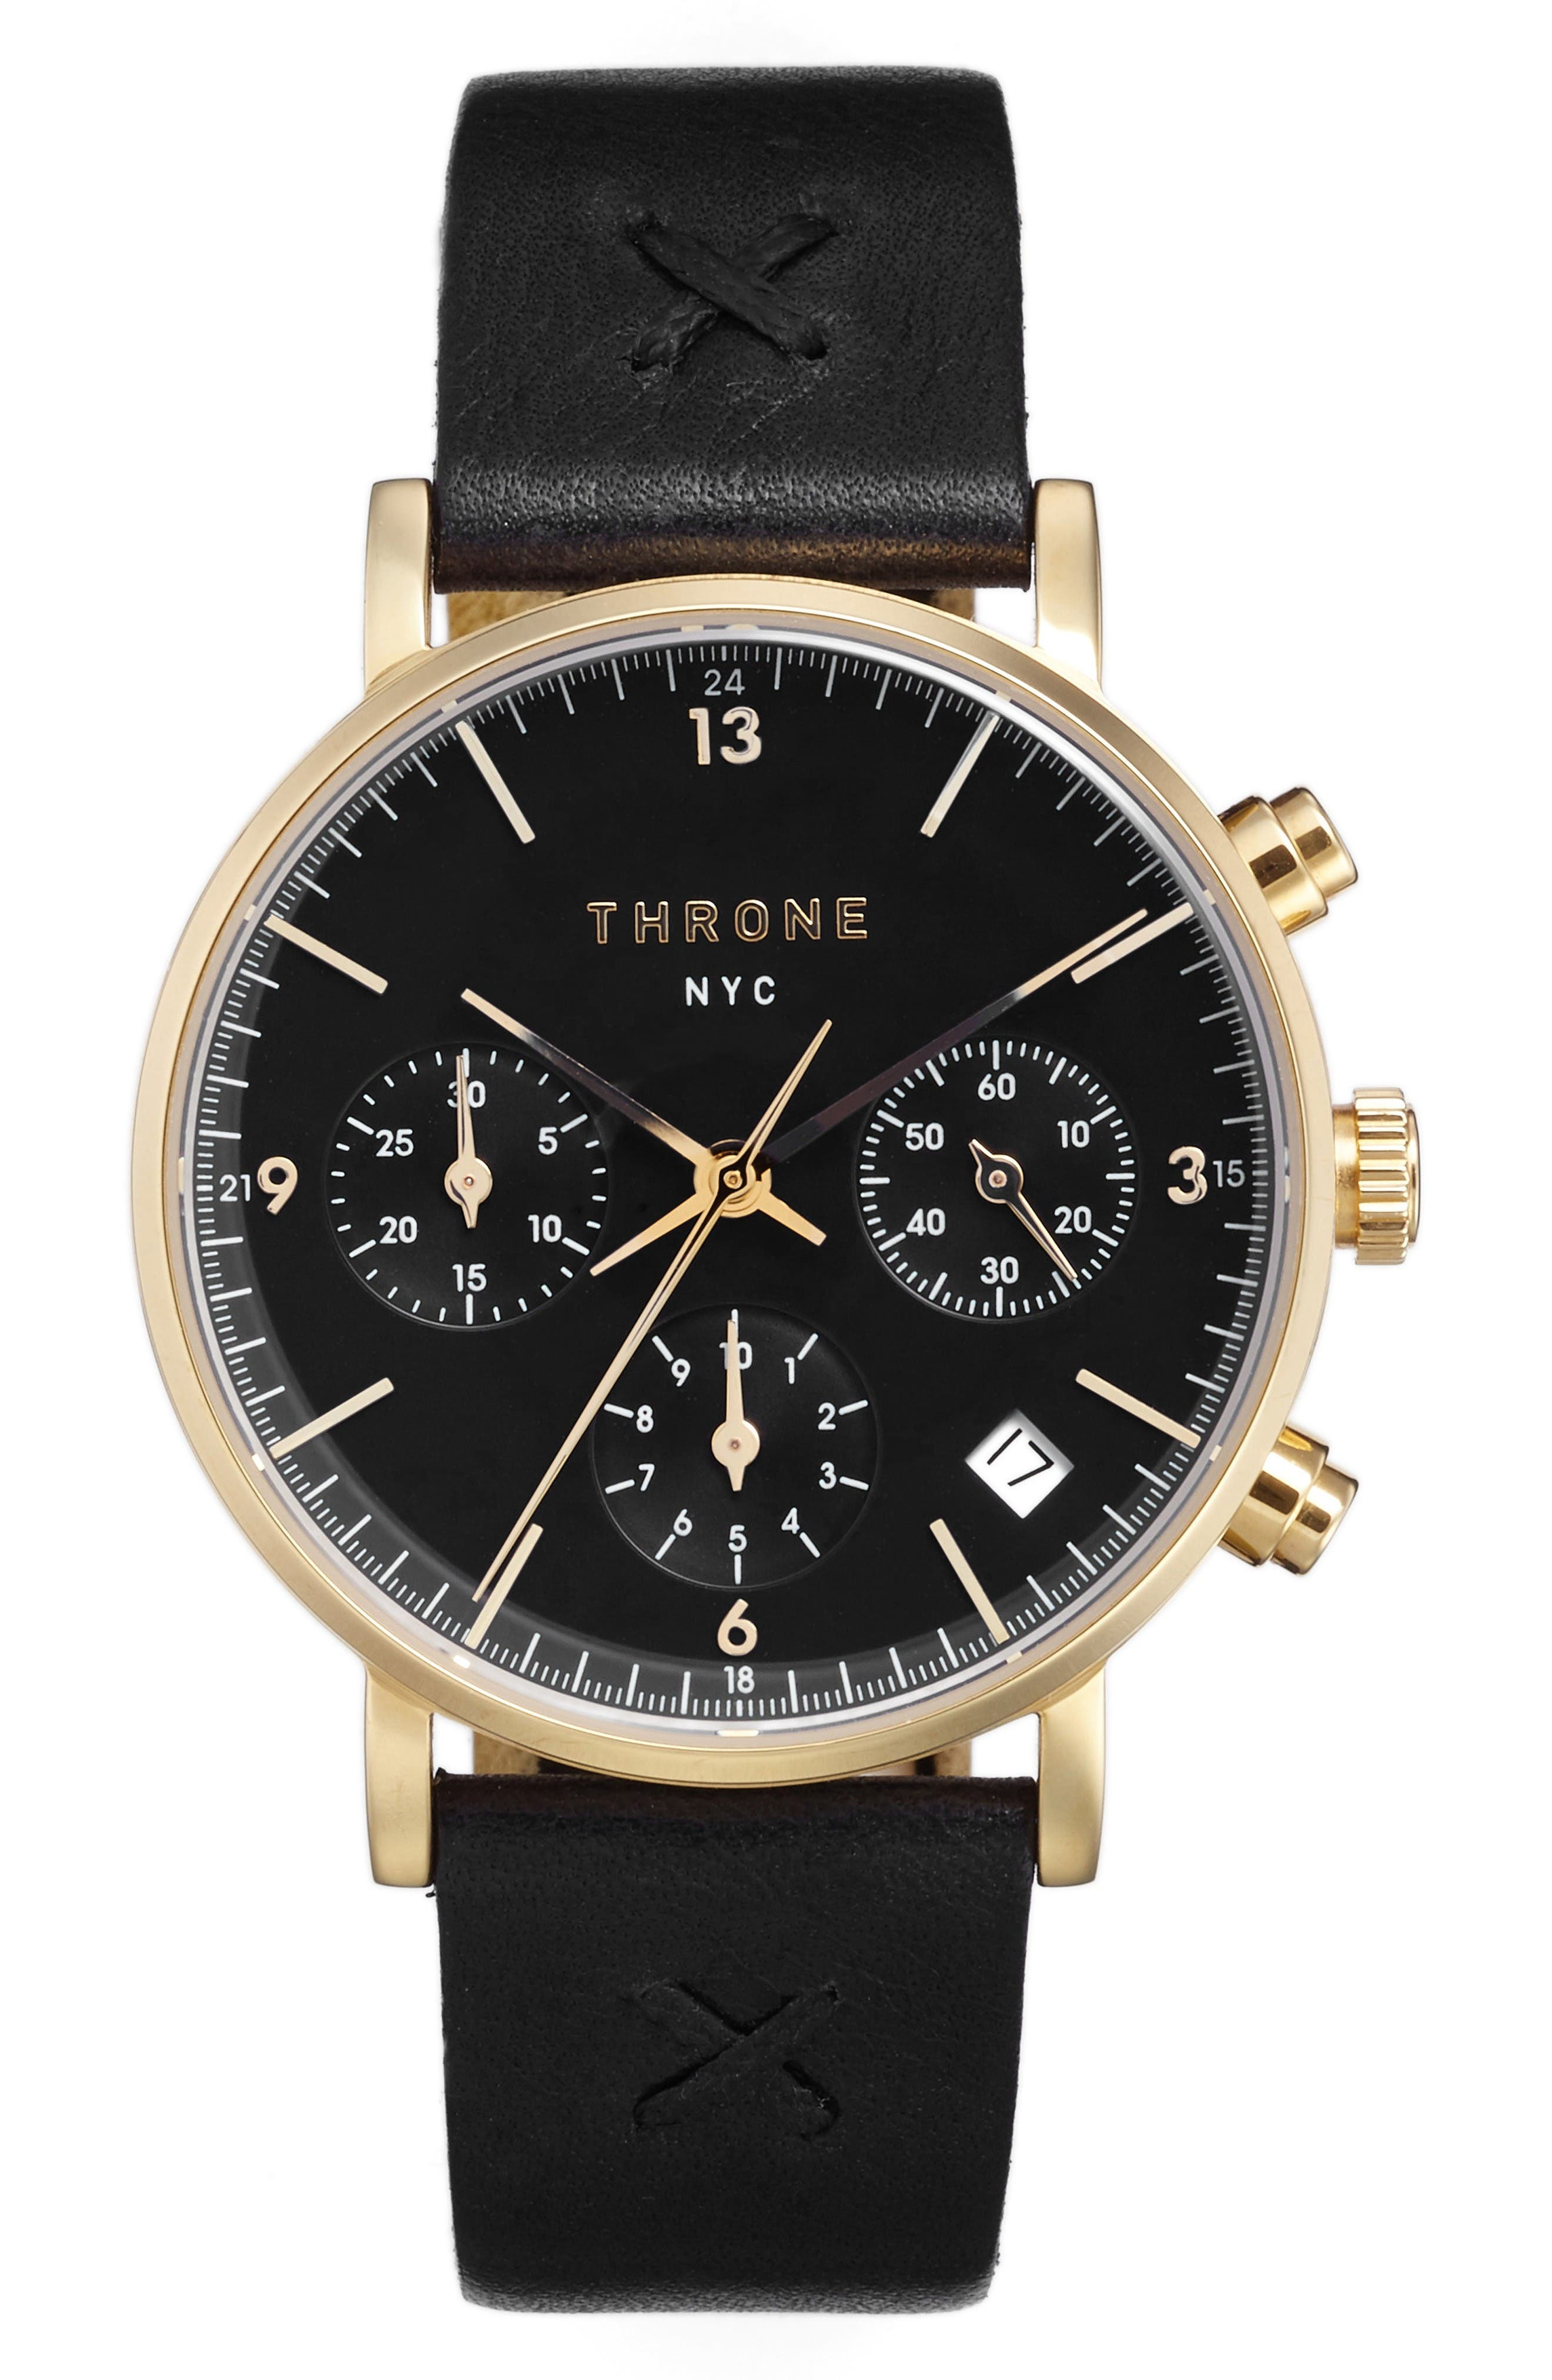 THRONE 2.0 Chronograph Leather Strap Watch, 40mm